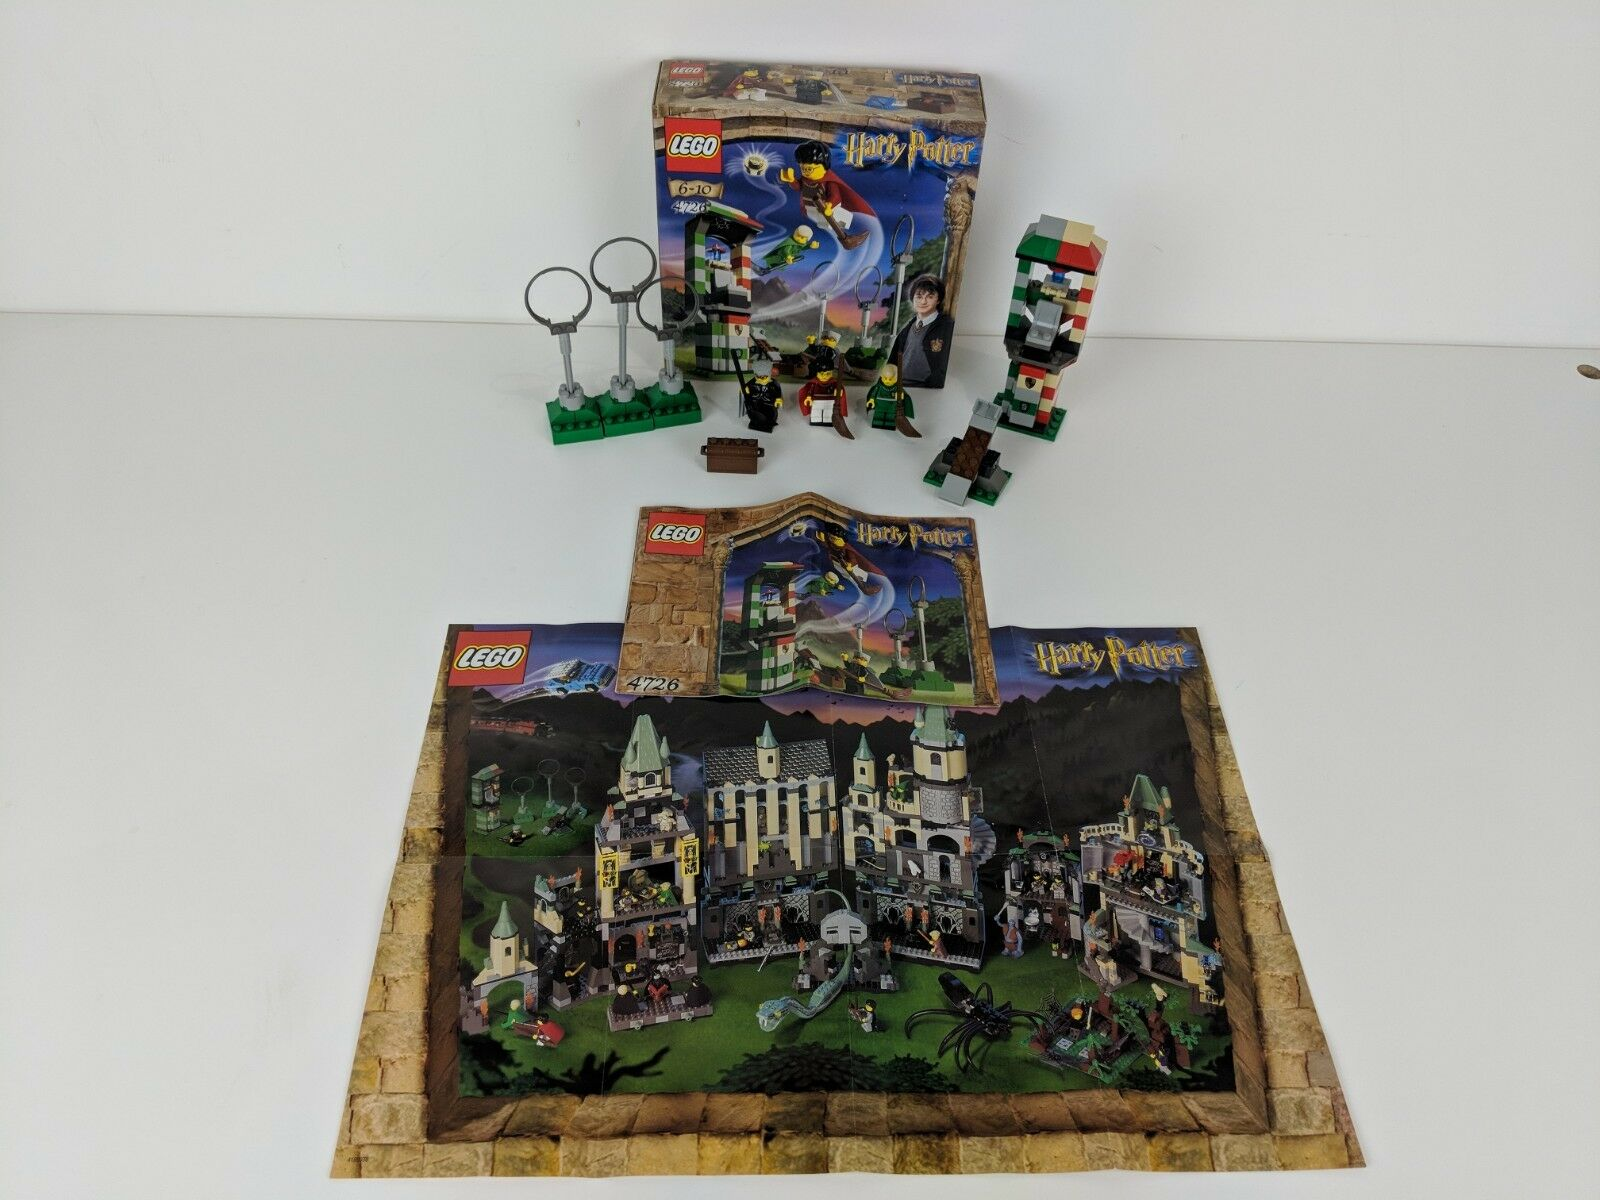 Lego Harry Potter 4726 Quidditch Practice With Minifigures, box  & Instructions